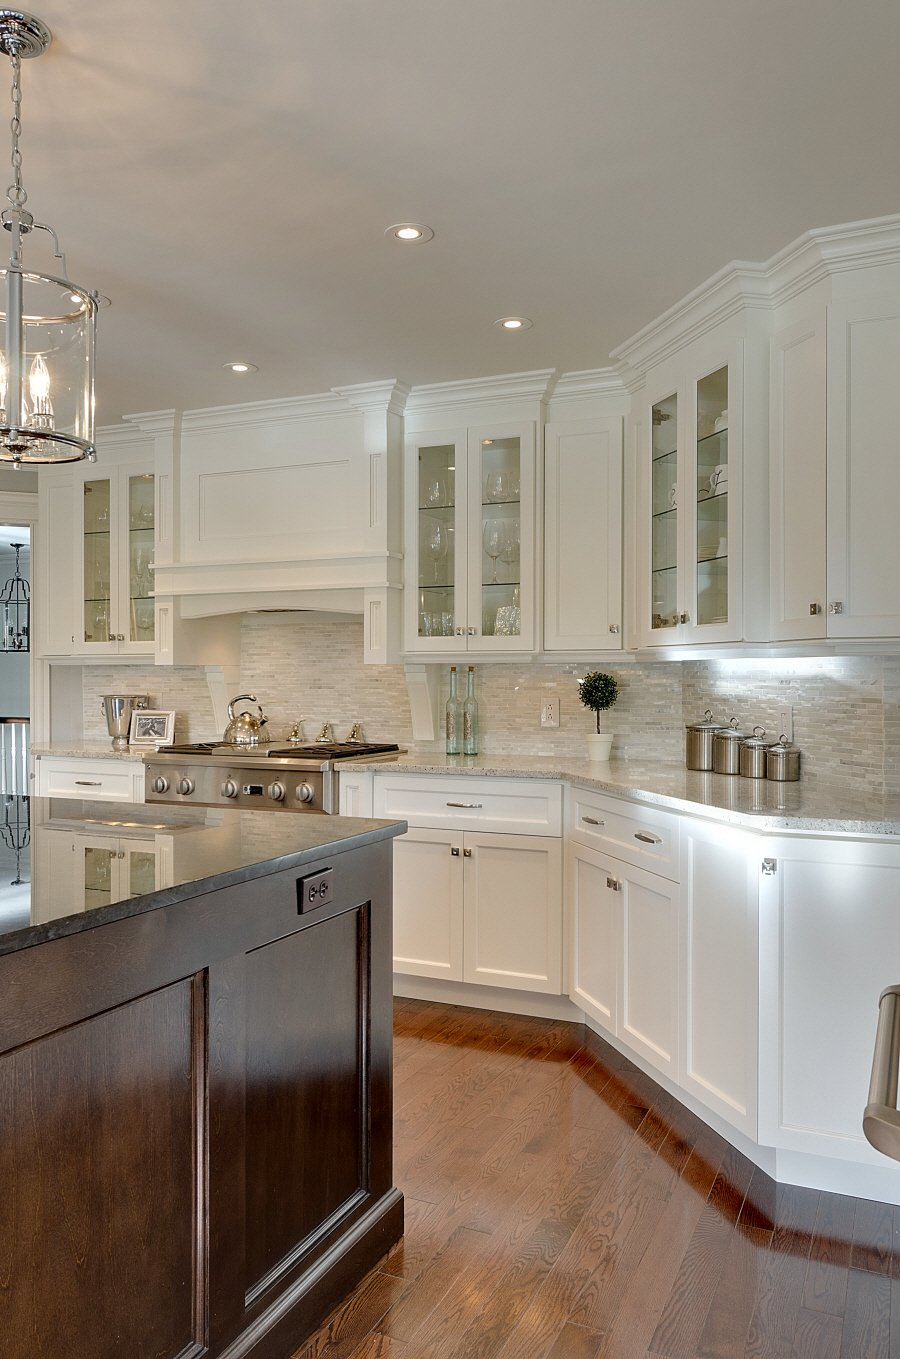 Smith Smith Kitchens: YourStyle Kitchens: Our Transitional Theme